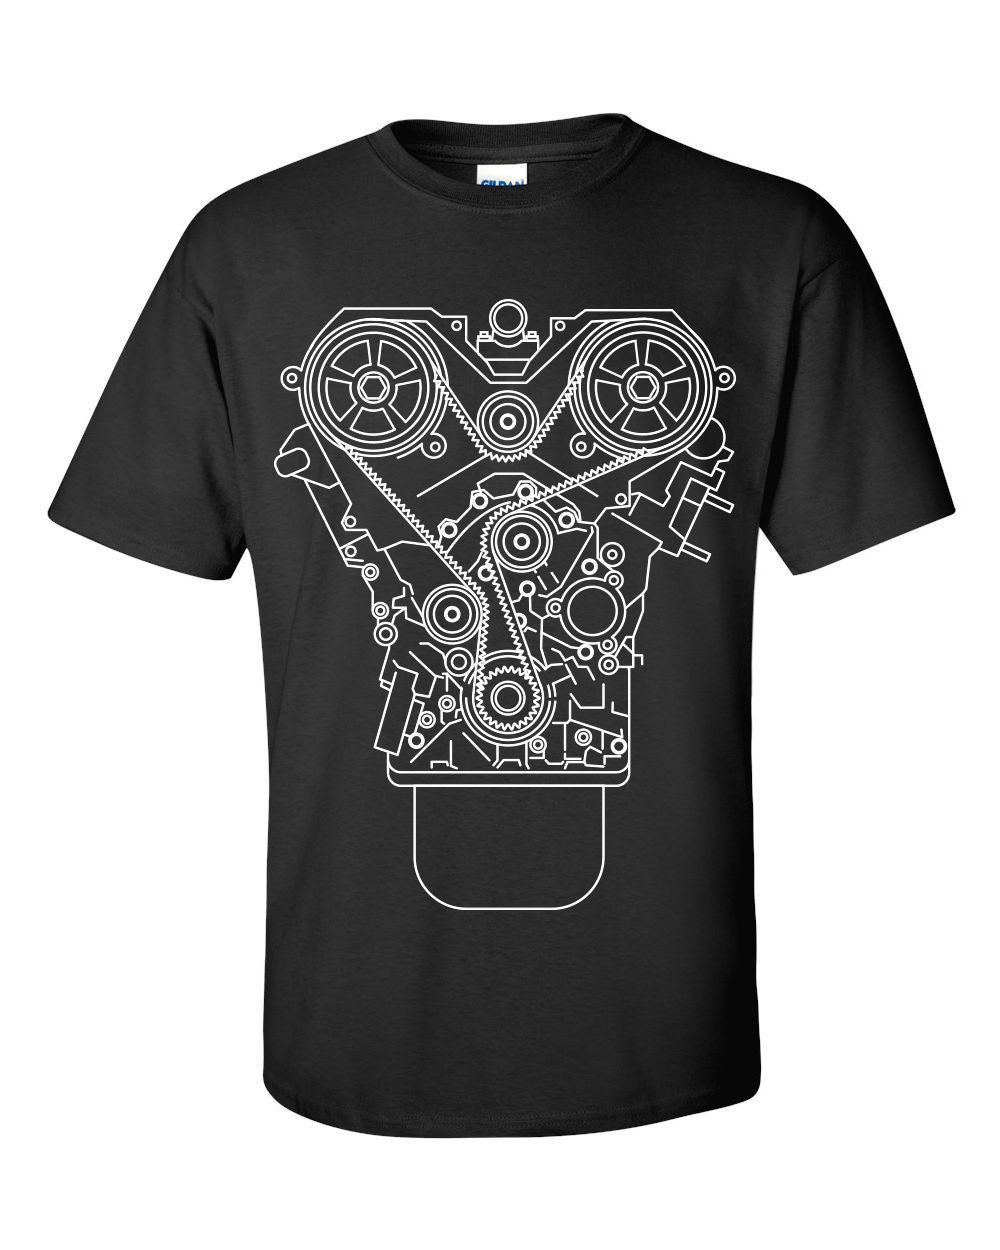 100% Cotton Brand New ENGINE DESIGN T-shirt Black S-3XL JDM Tuner Decaleticdress-eticdress